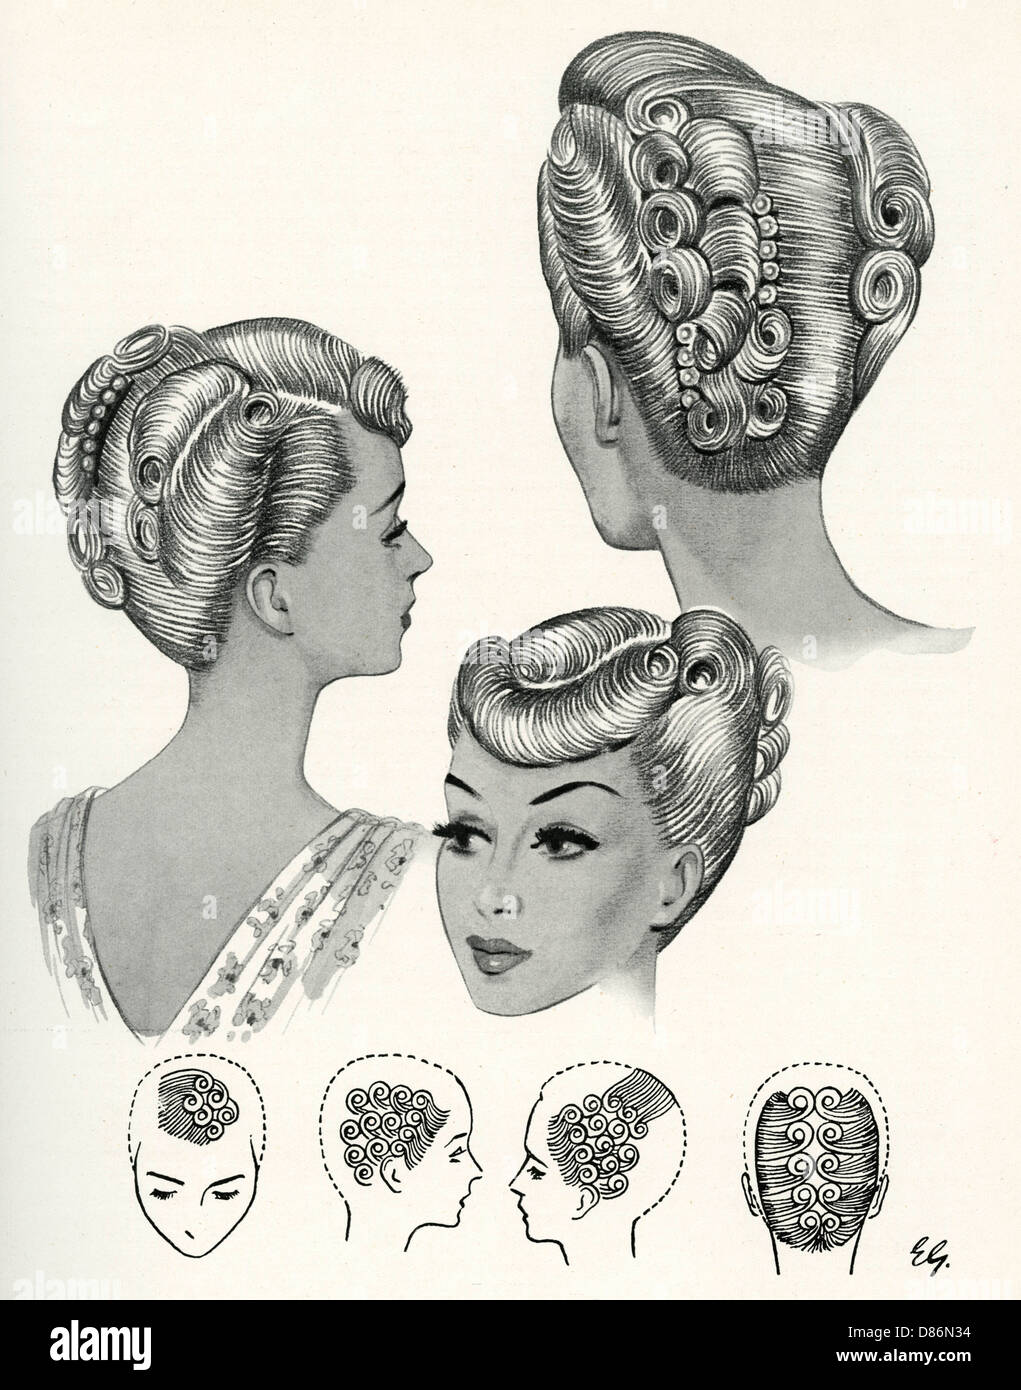 1940s Hairstyles Stock Photos & 1940s Hairstyles Stock Images - Alamy